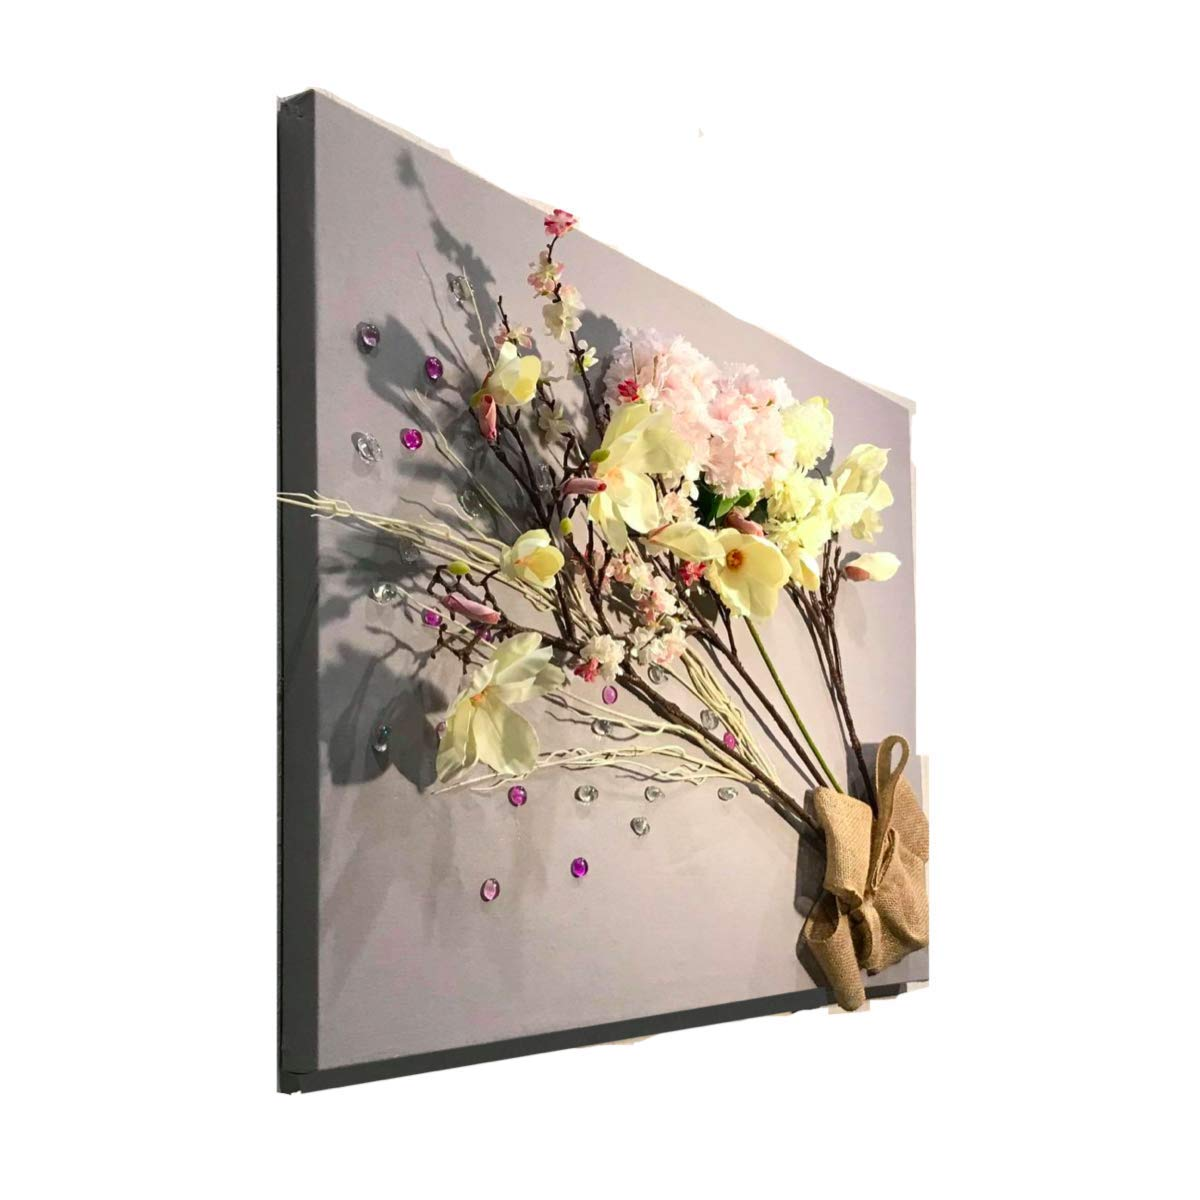 Large Wall Decor We OFFer at cheap prices 3D Picture Fabric Flowers Cotton on Don't miss the campaign Artificial